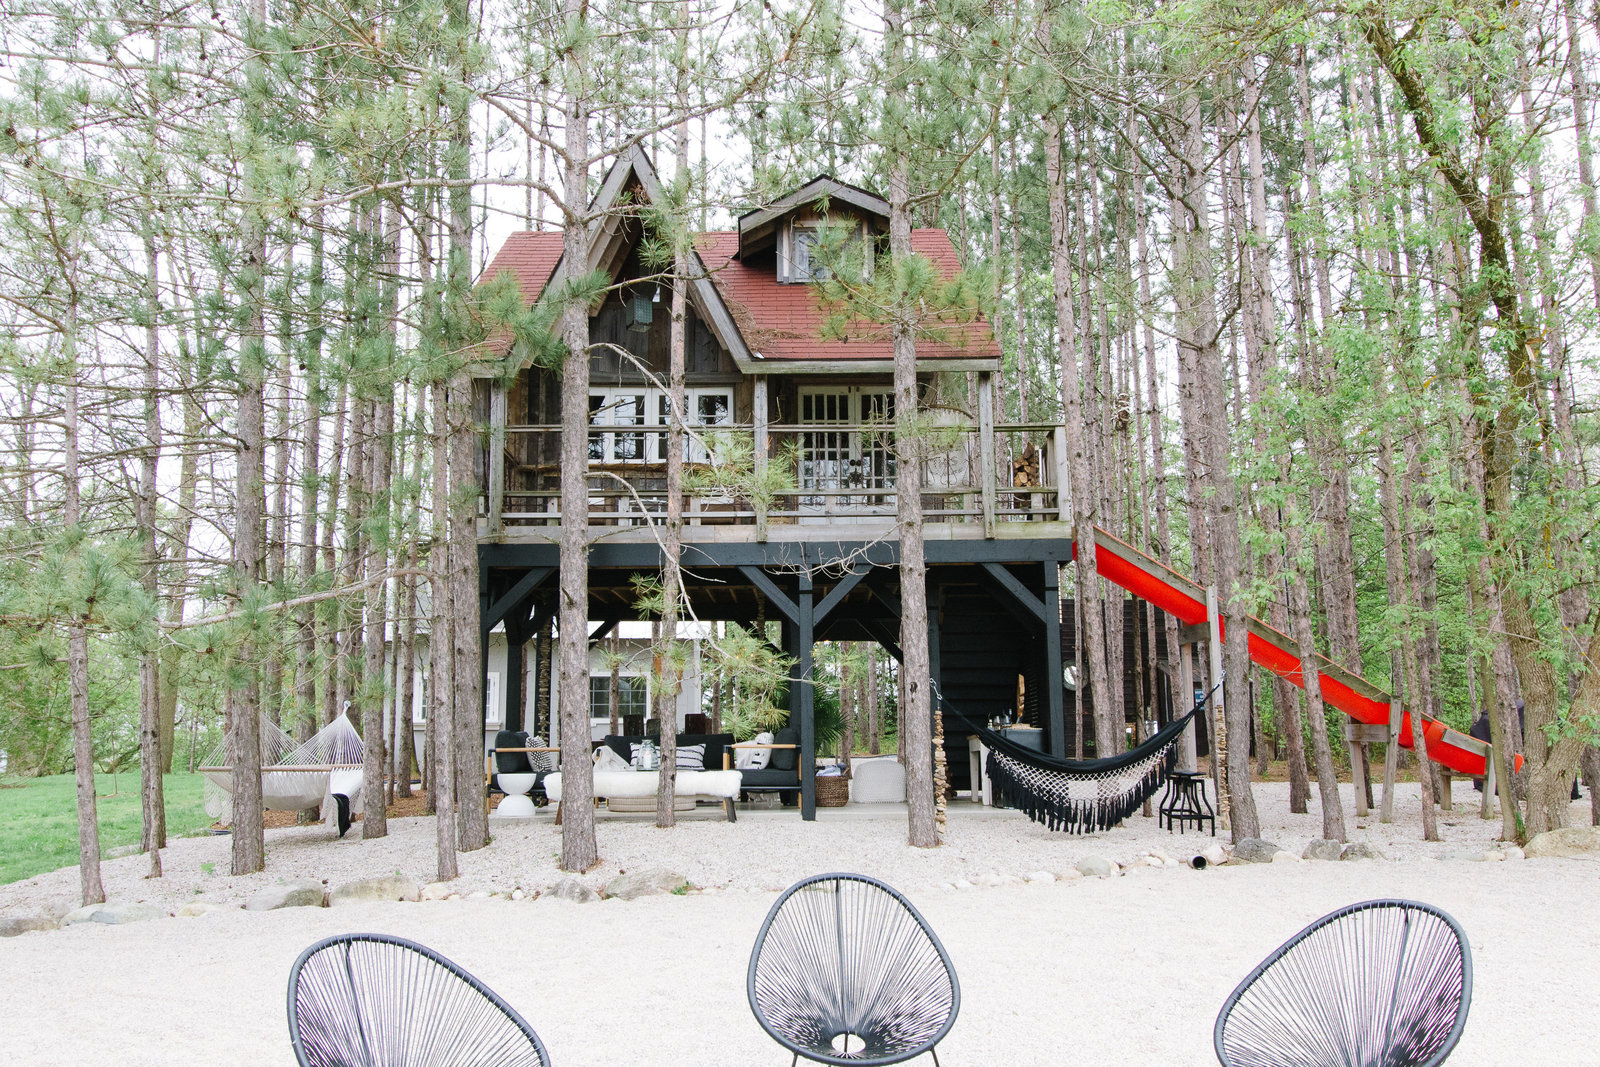 Treehouse-Cabin-Retreat-Vacation-Rental-Lynne-Knowlton-12